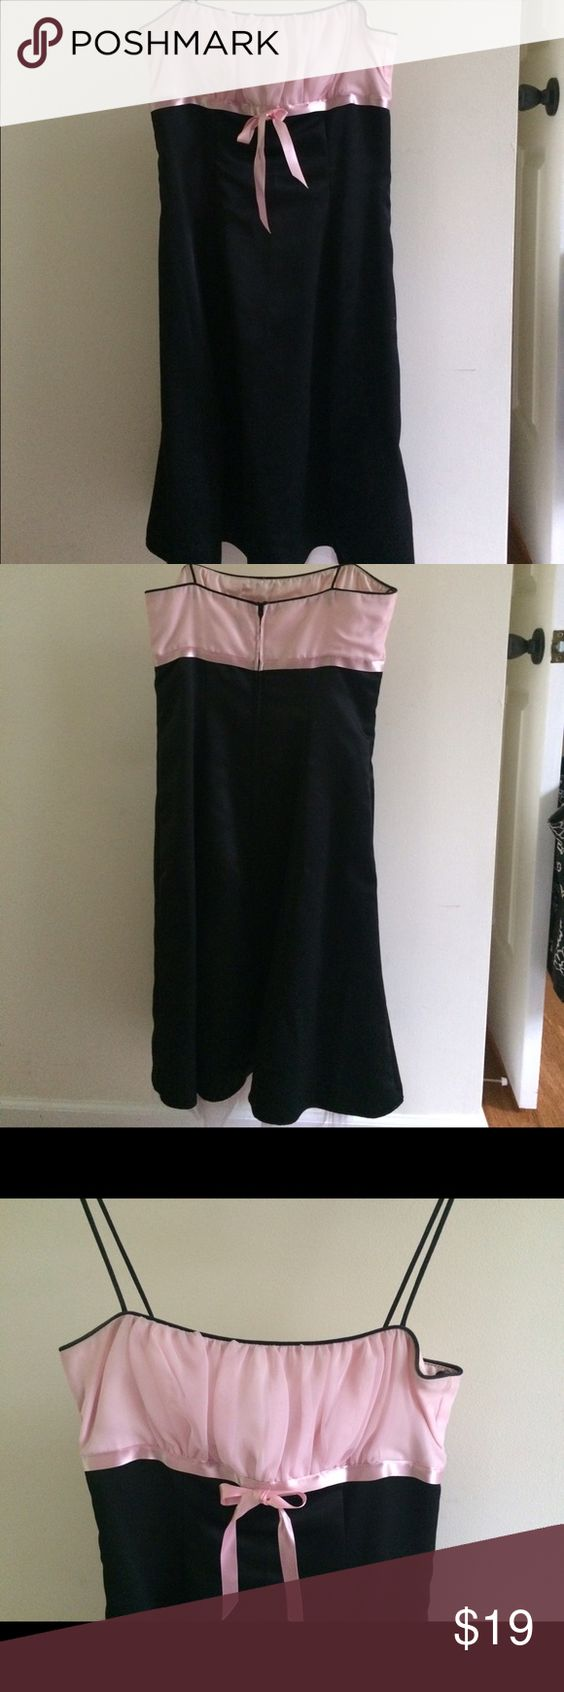 Classy black and pink cocktail dress! Classy black dress w pink ruffle and bow. Worn once! Perfect for a wedding, date night, or party! Size 7 from Nordstrom. Zum Zum Dresses